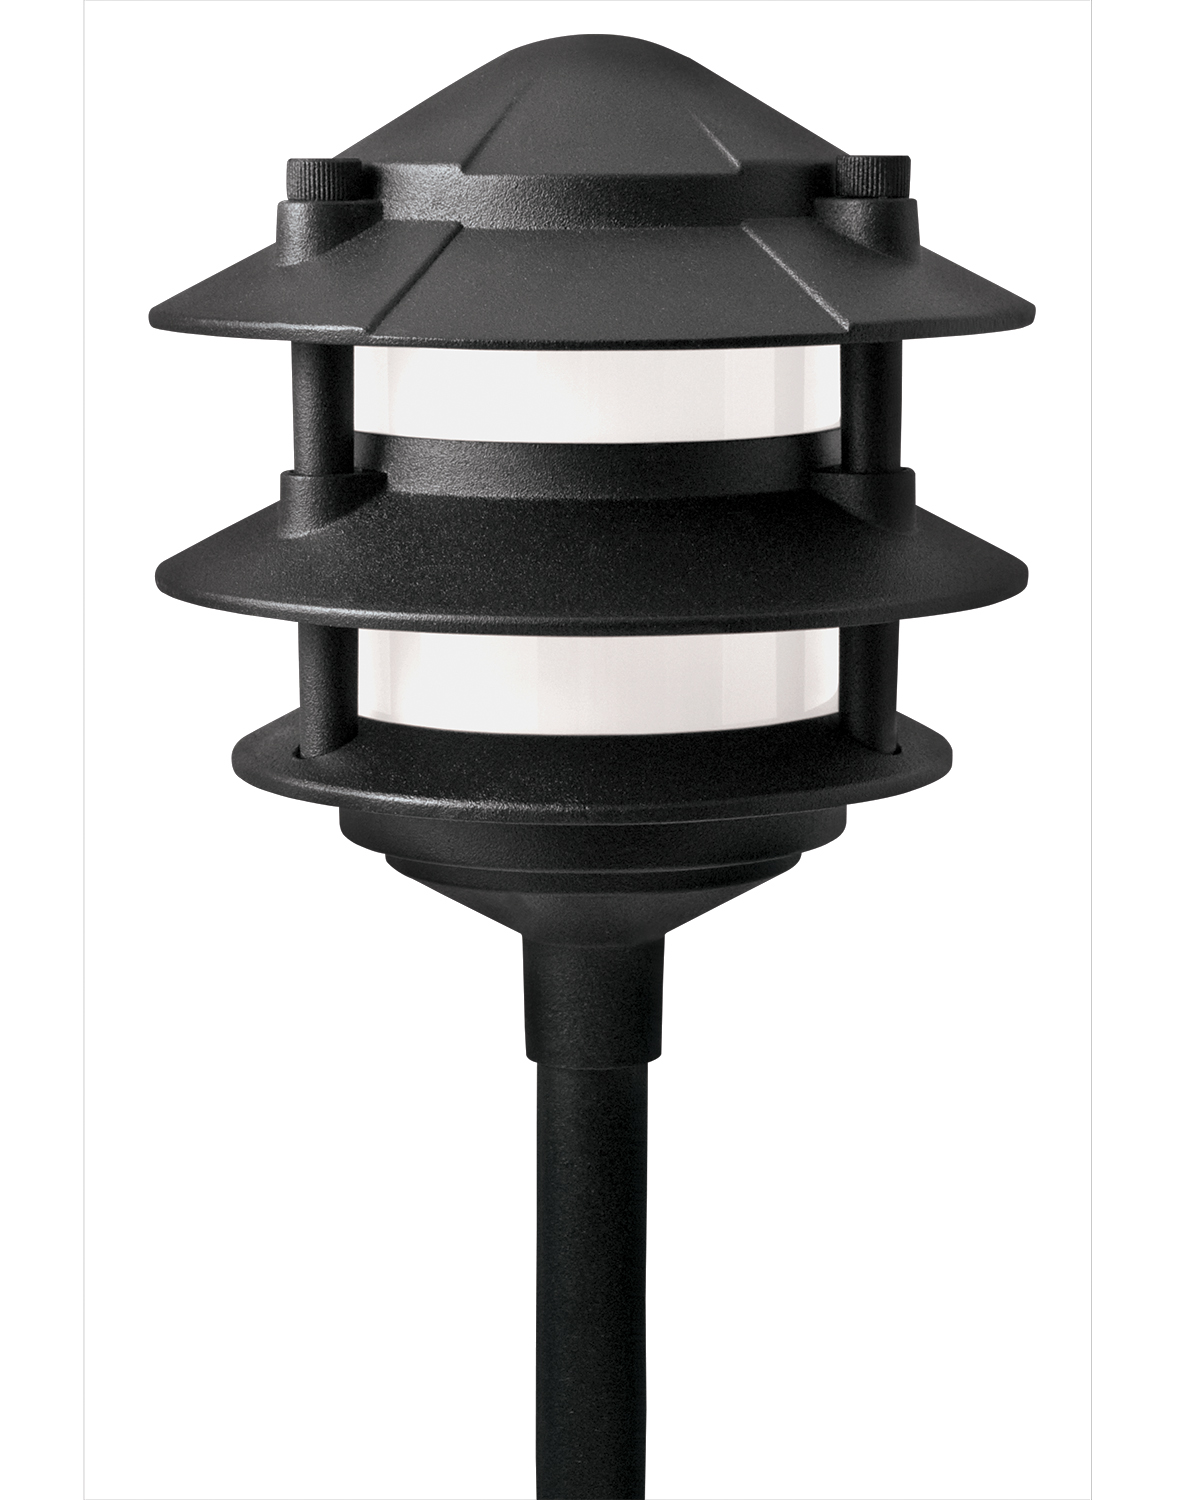 low voltage black aluminum 11 watt 3 tier outdoor garden path light. Black Bedroom Furniture Sets. Home Design Ideas